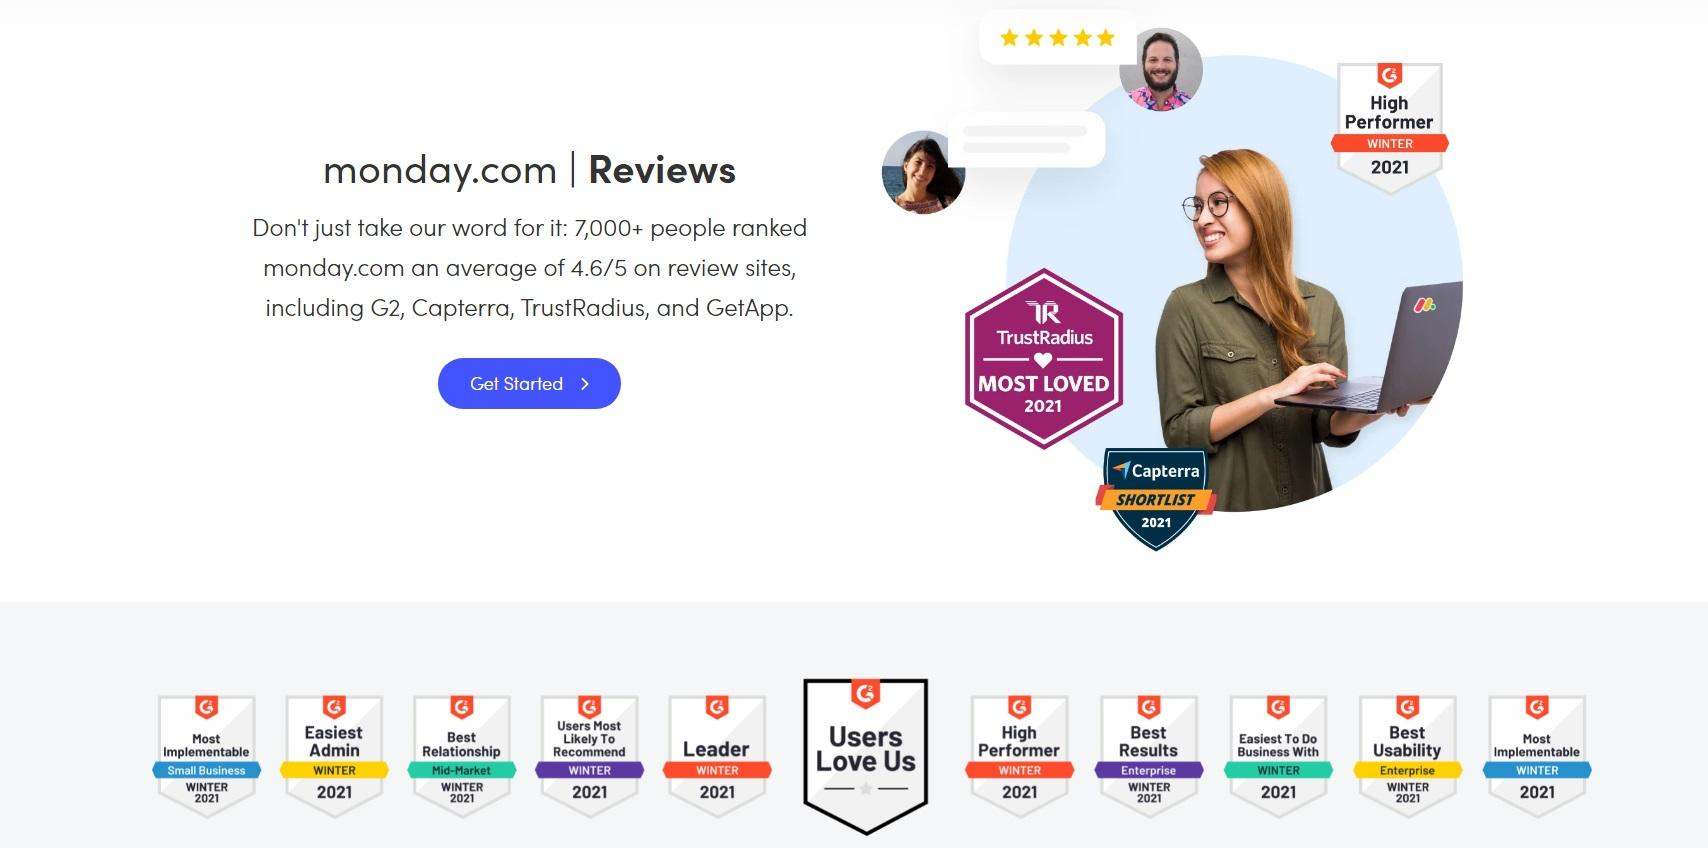 Monday.com is well-loved and trusted by both individuals and industry leaders